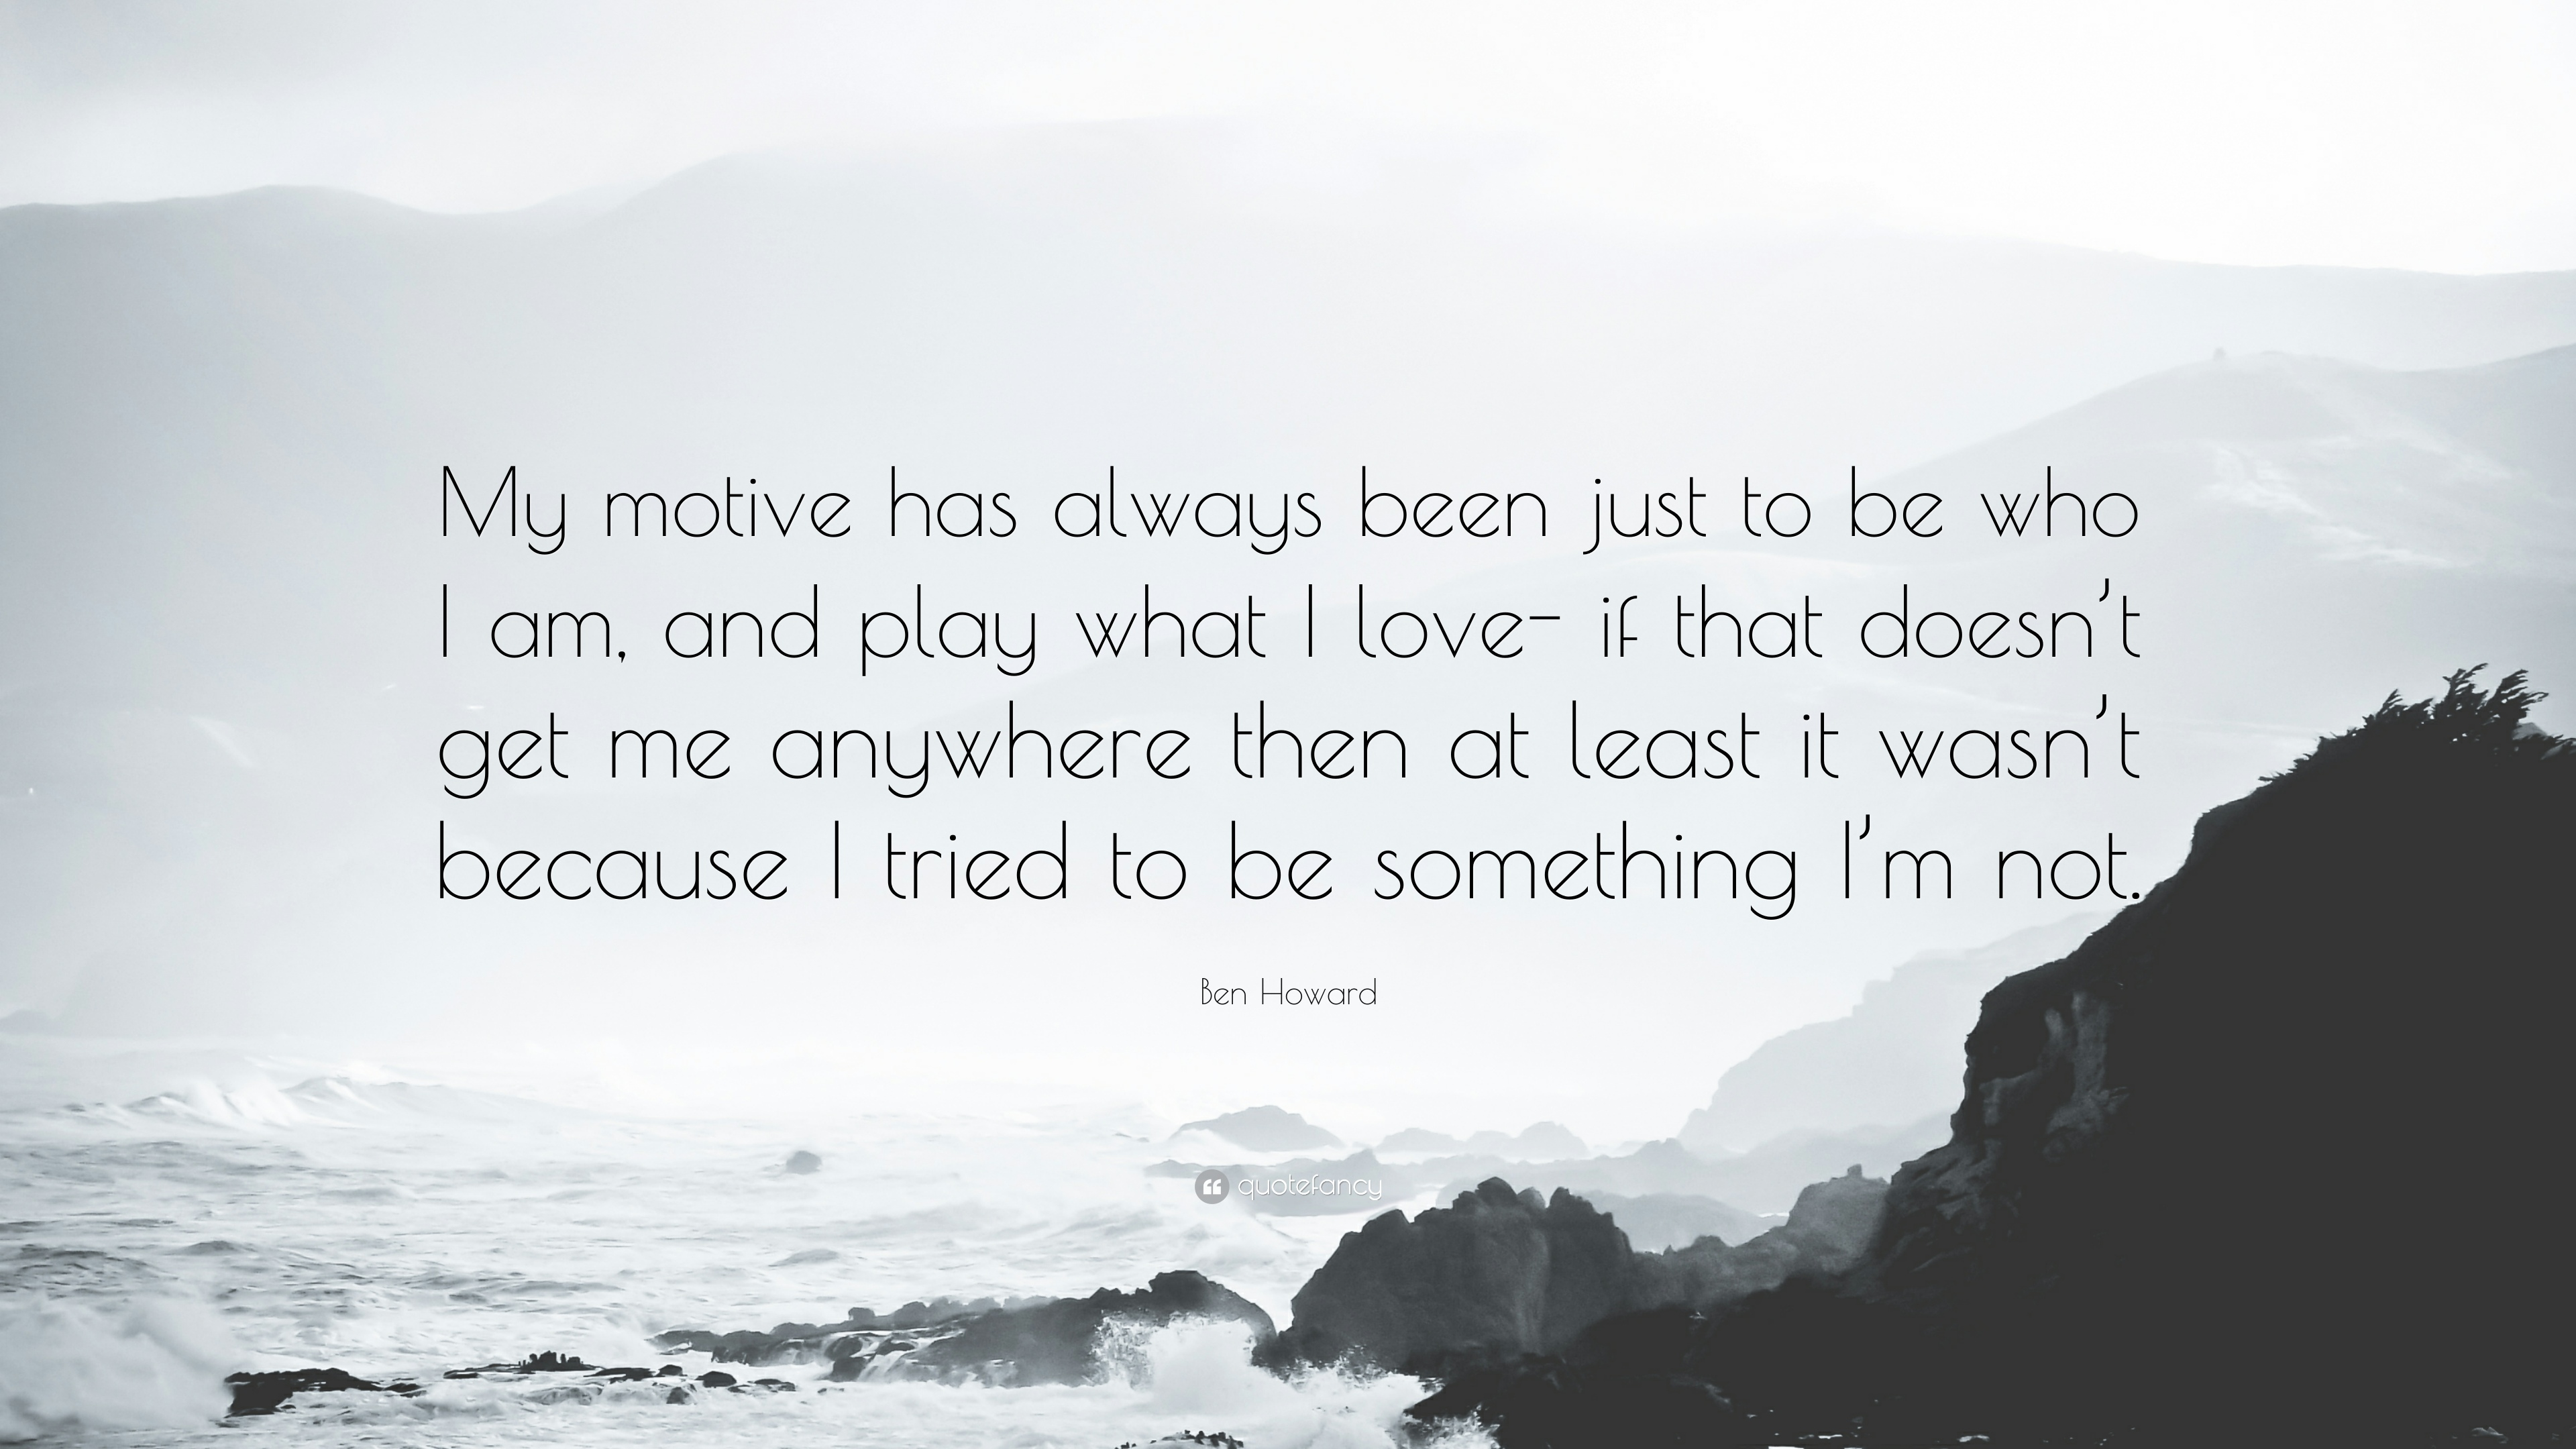 Superior Ben Howard Quote: U201cMy Motive Has Always Been Just To Be Who I Am